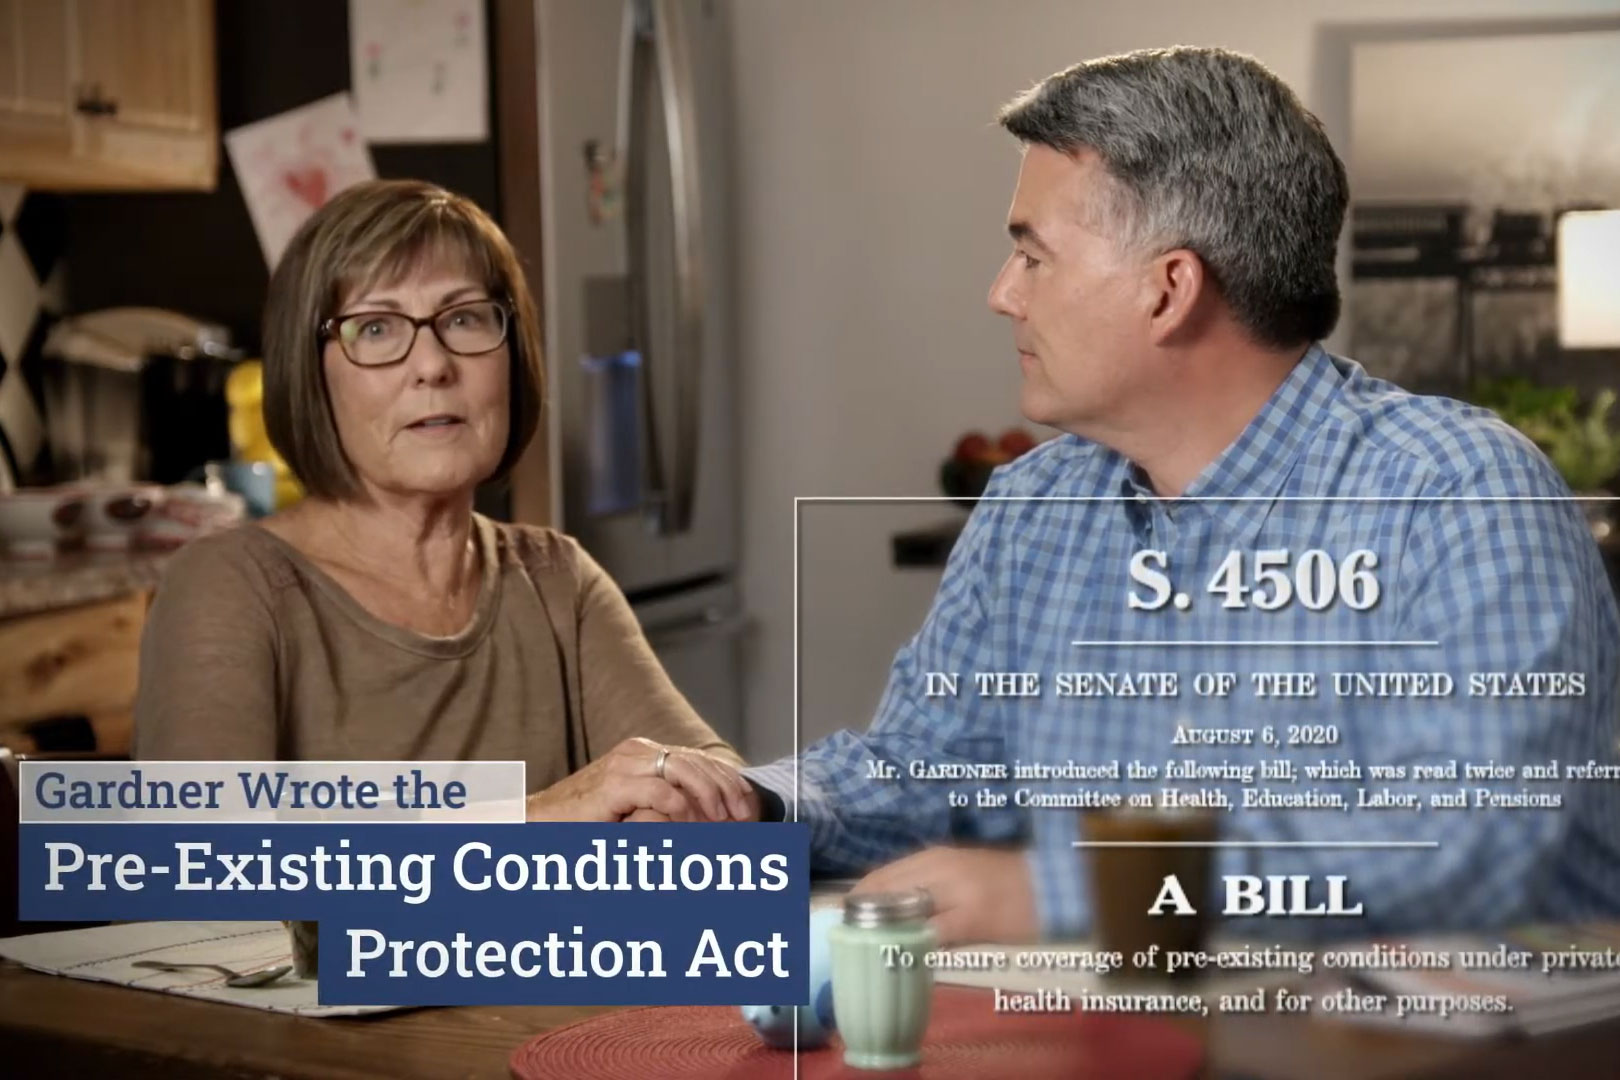 A screengrab of a Sen. Cory Gardner campaign ad that came out on Sept. 15, 2020, in which he claims he wrote the bill on protection preexisting conditions.